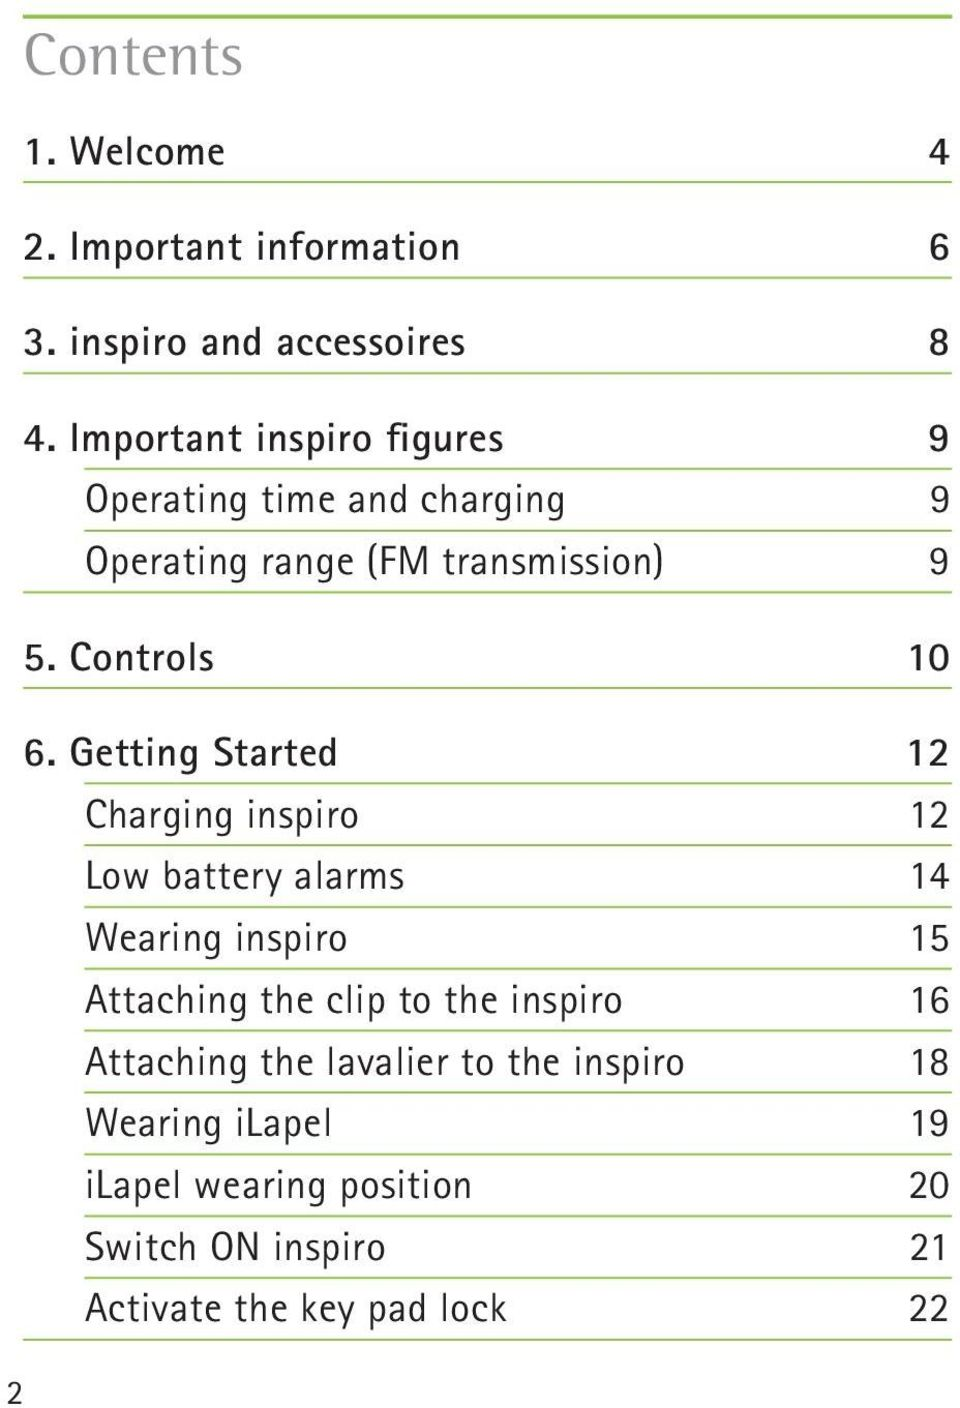 Getting Started 12 Charging inspiro 12 Low battery alarms 14 Wearing inspiro 15 Attaching the clip to the